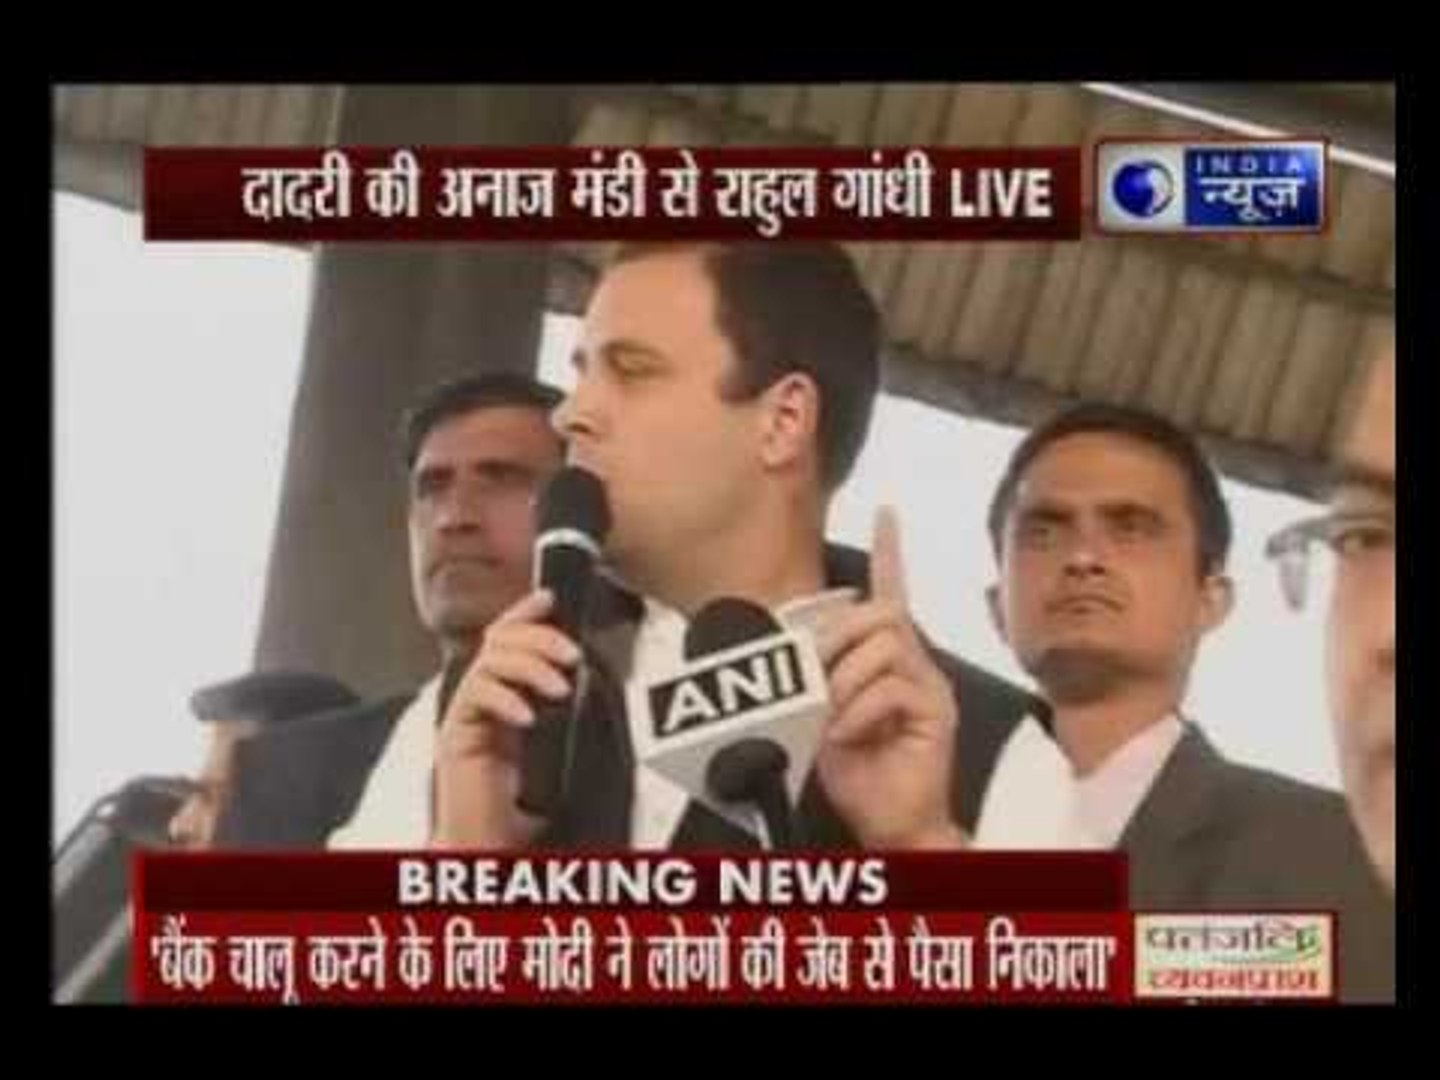 'PM has waged a war against poor people', Rahul Gandhi